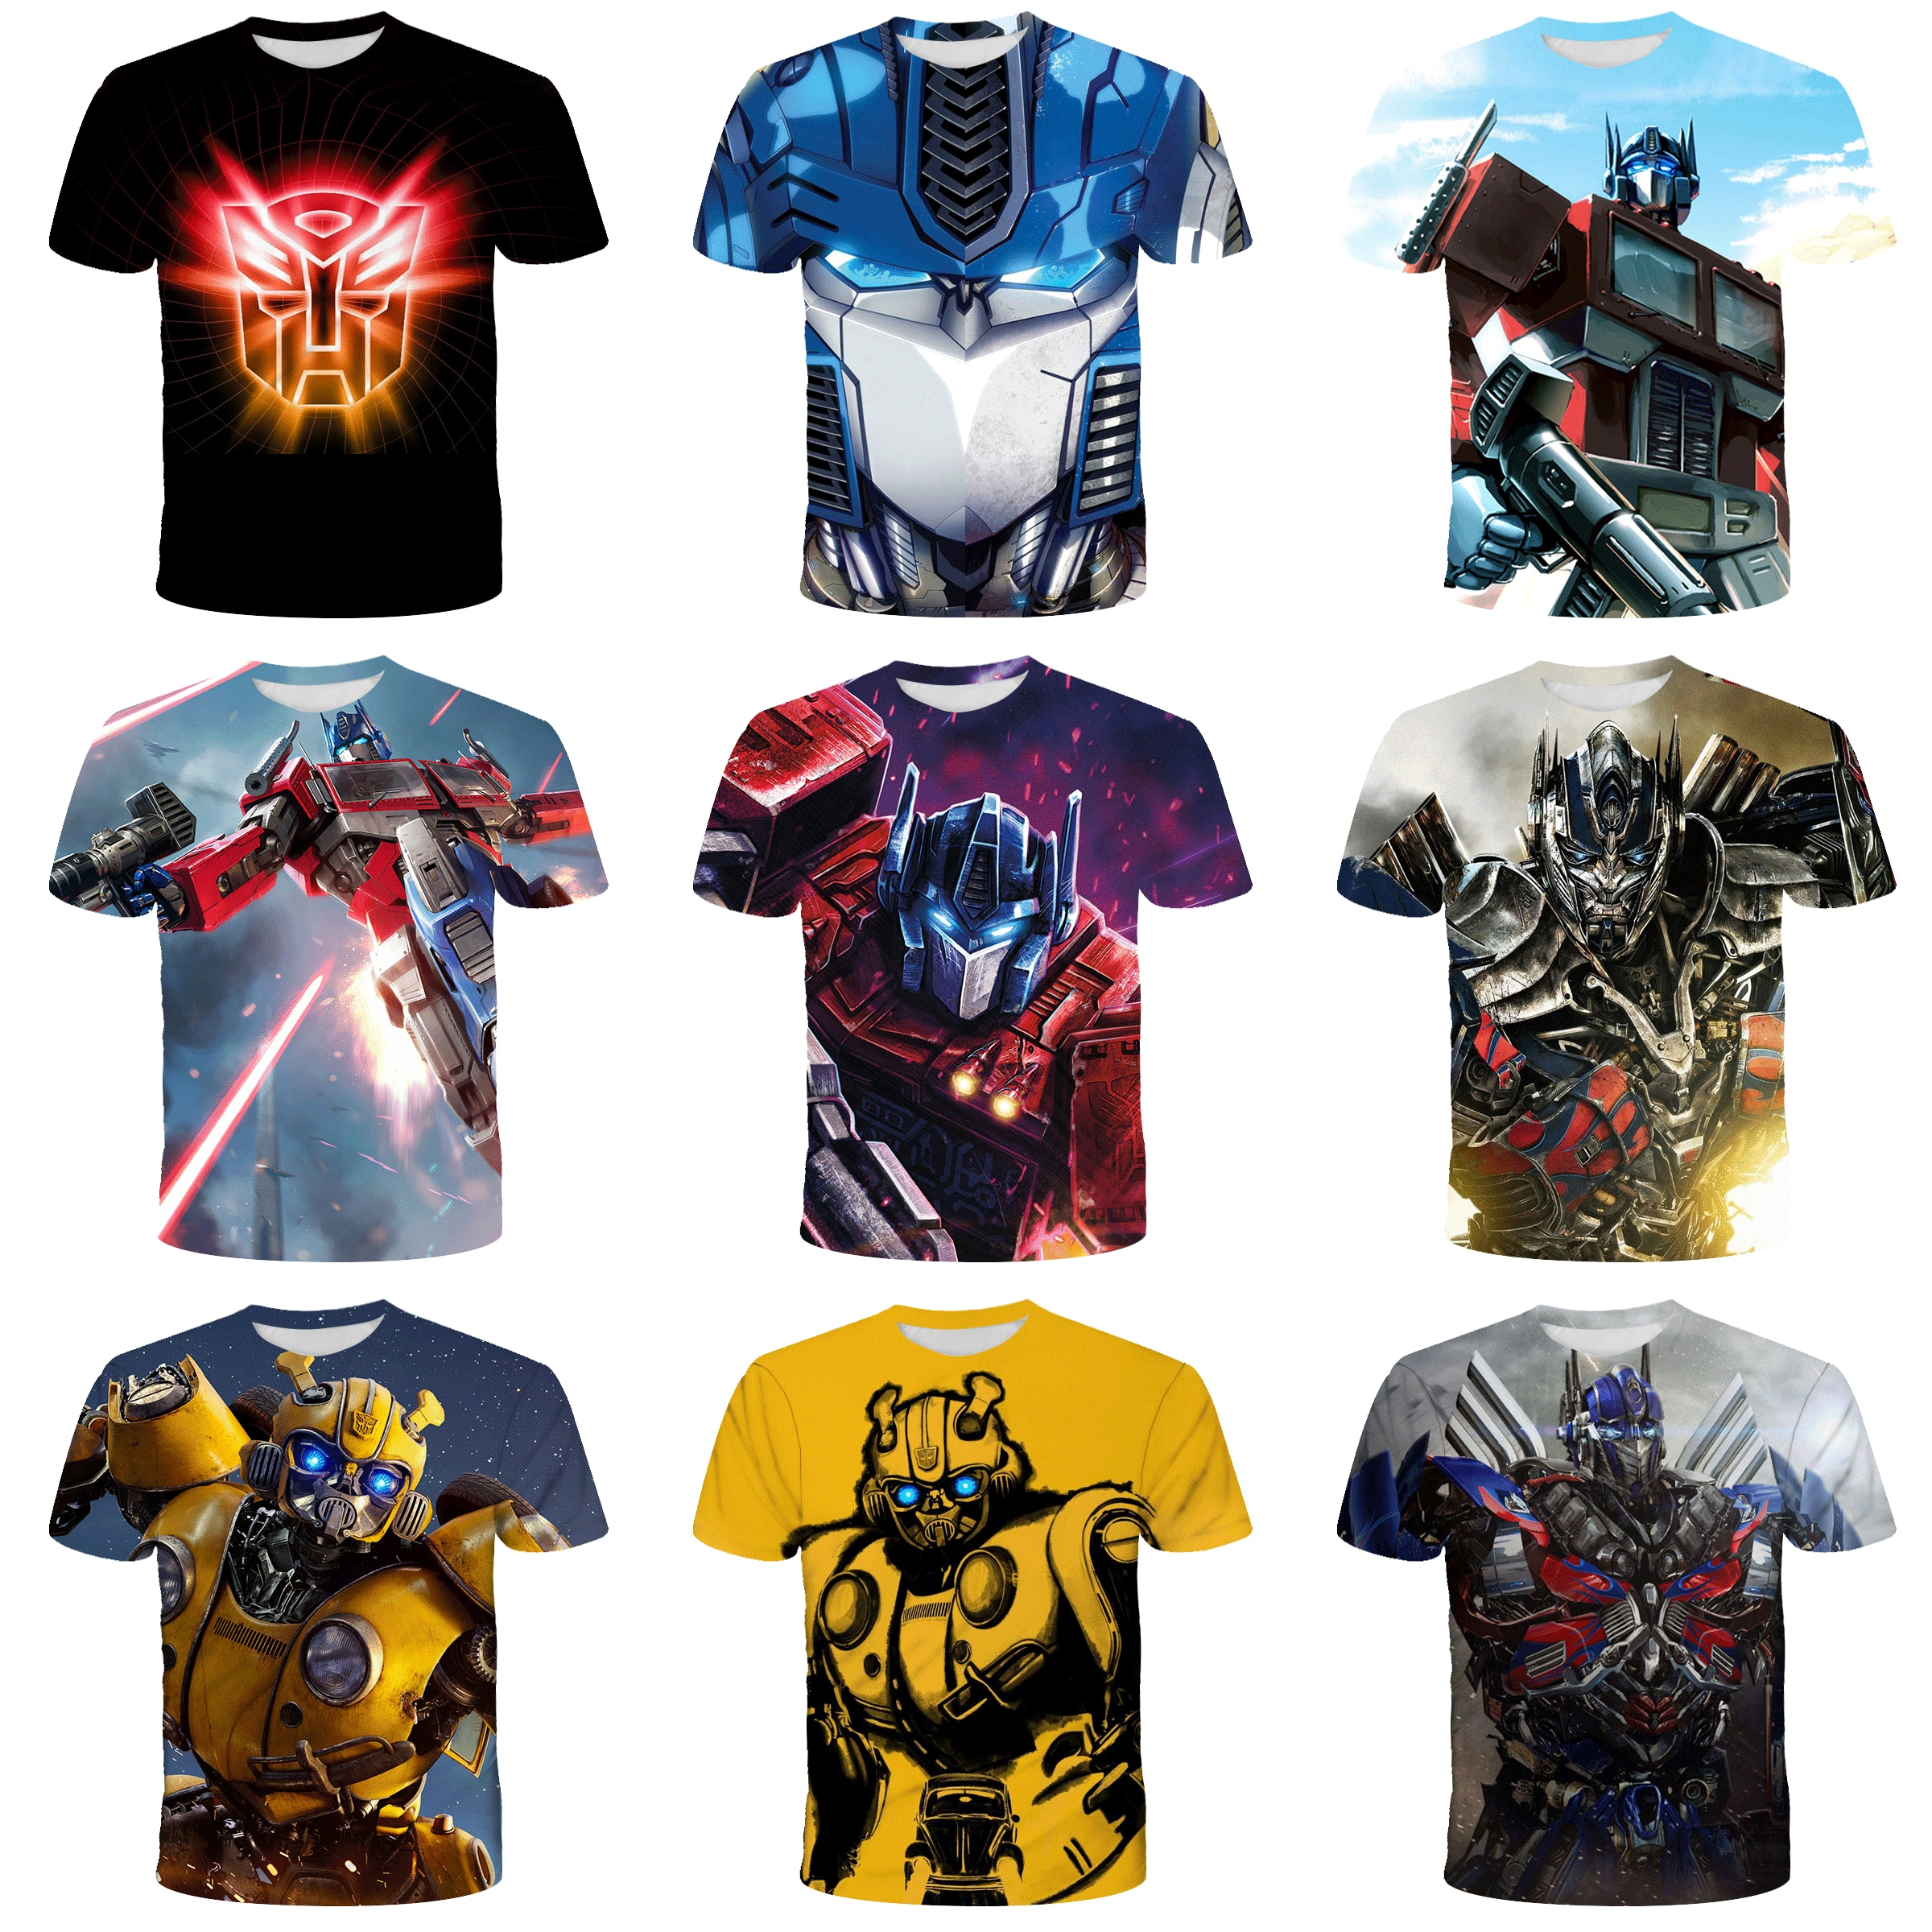 AliExpress - Hornet Clothes Summer Kids Clothes boy clothes Optimus Prime T-shirt 3D printed girls clothes Baby Children's clothing Kids Gift